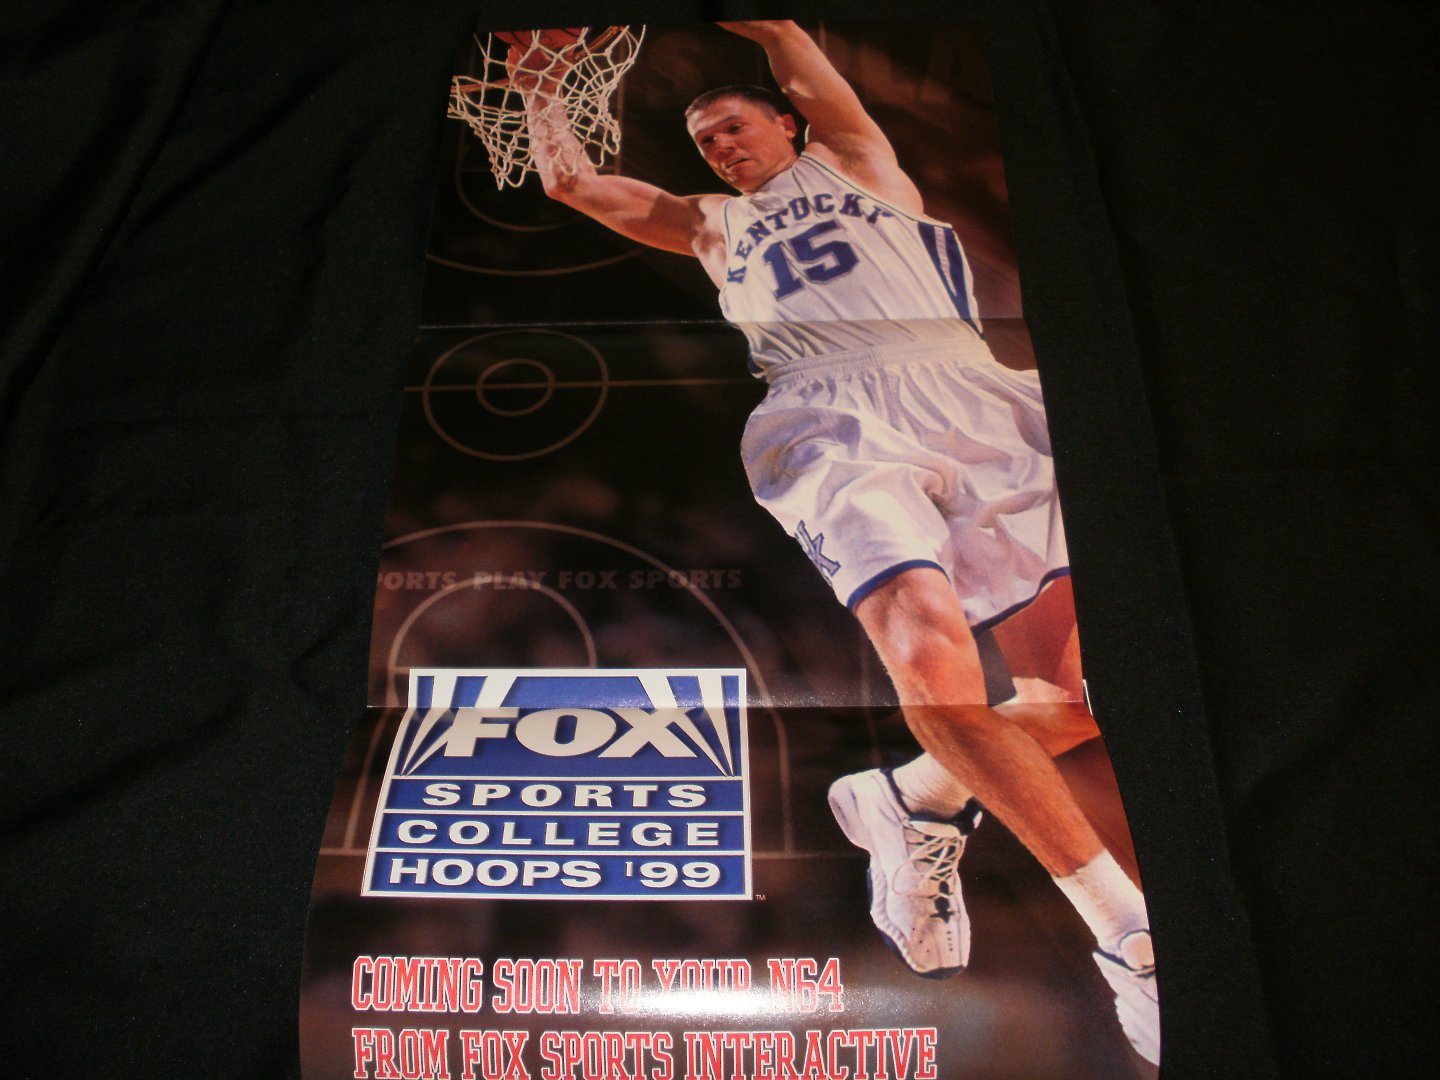 Fox Sports College Hoops '99 Poster - Nintendo Power October, 1998 - Never Used